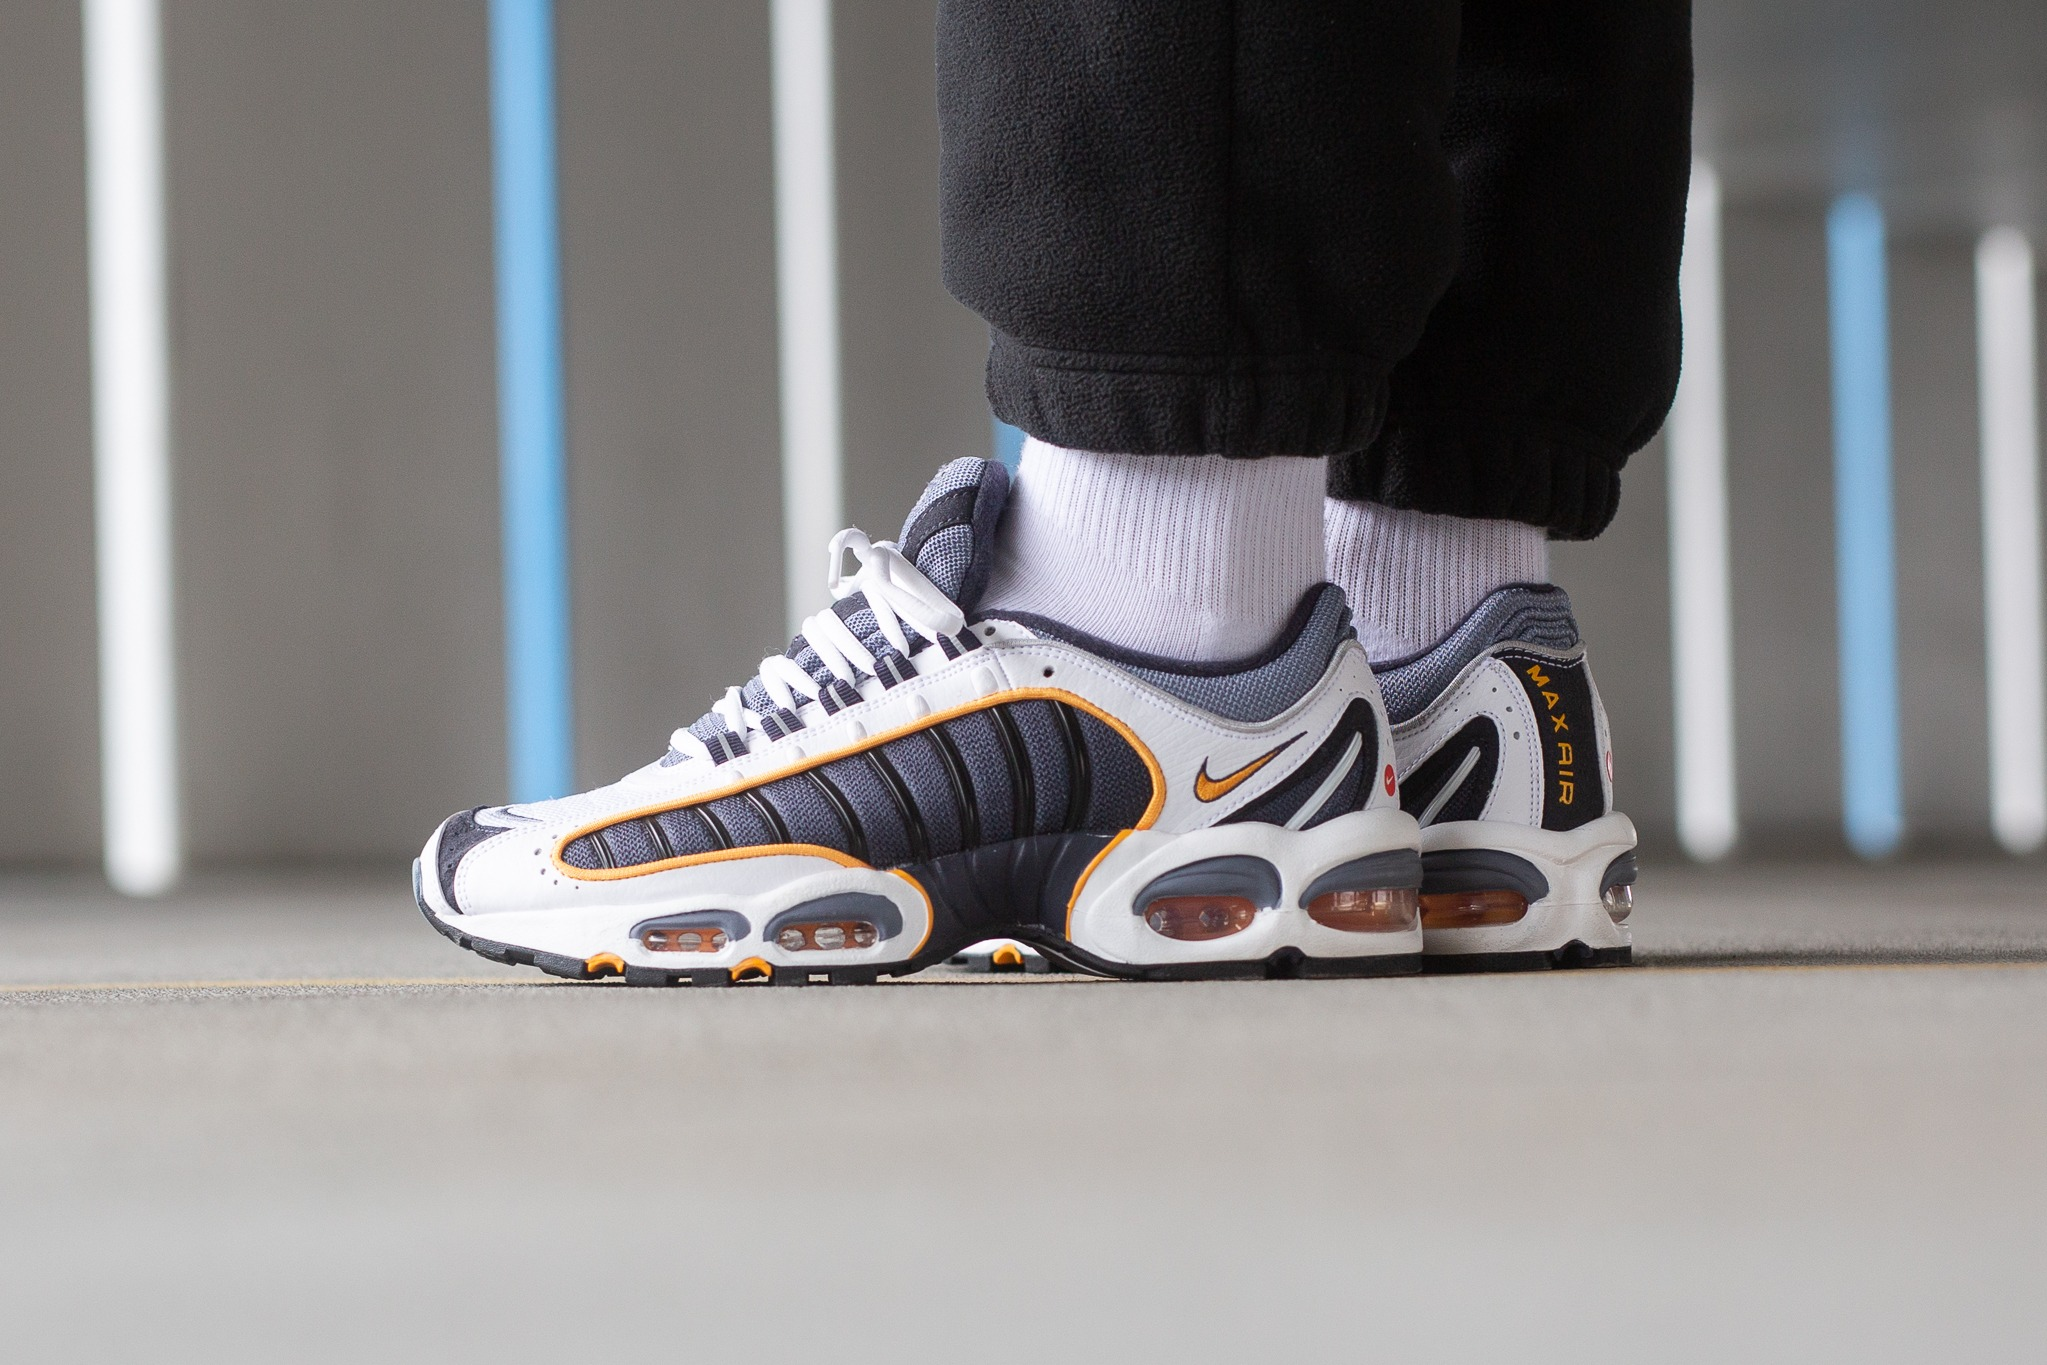 2b6522afb7 The Tailwind franchise hit the ground running in the late '70s, but in 1999  Nike introduced a well cushioned Air Max Tailwind IV—best known for its  radical ...